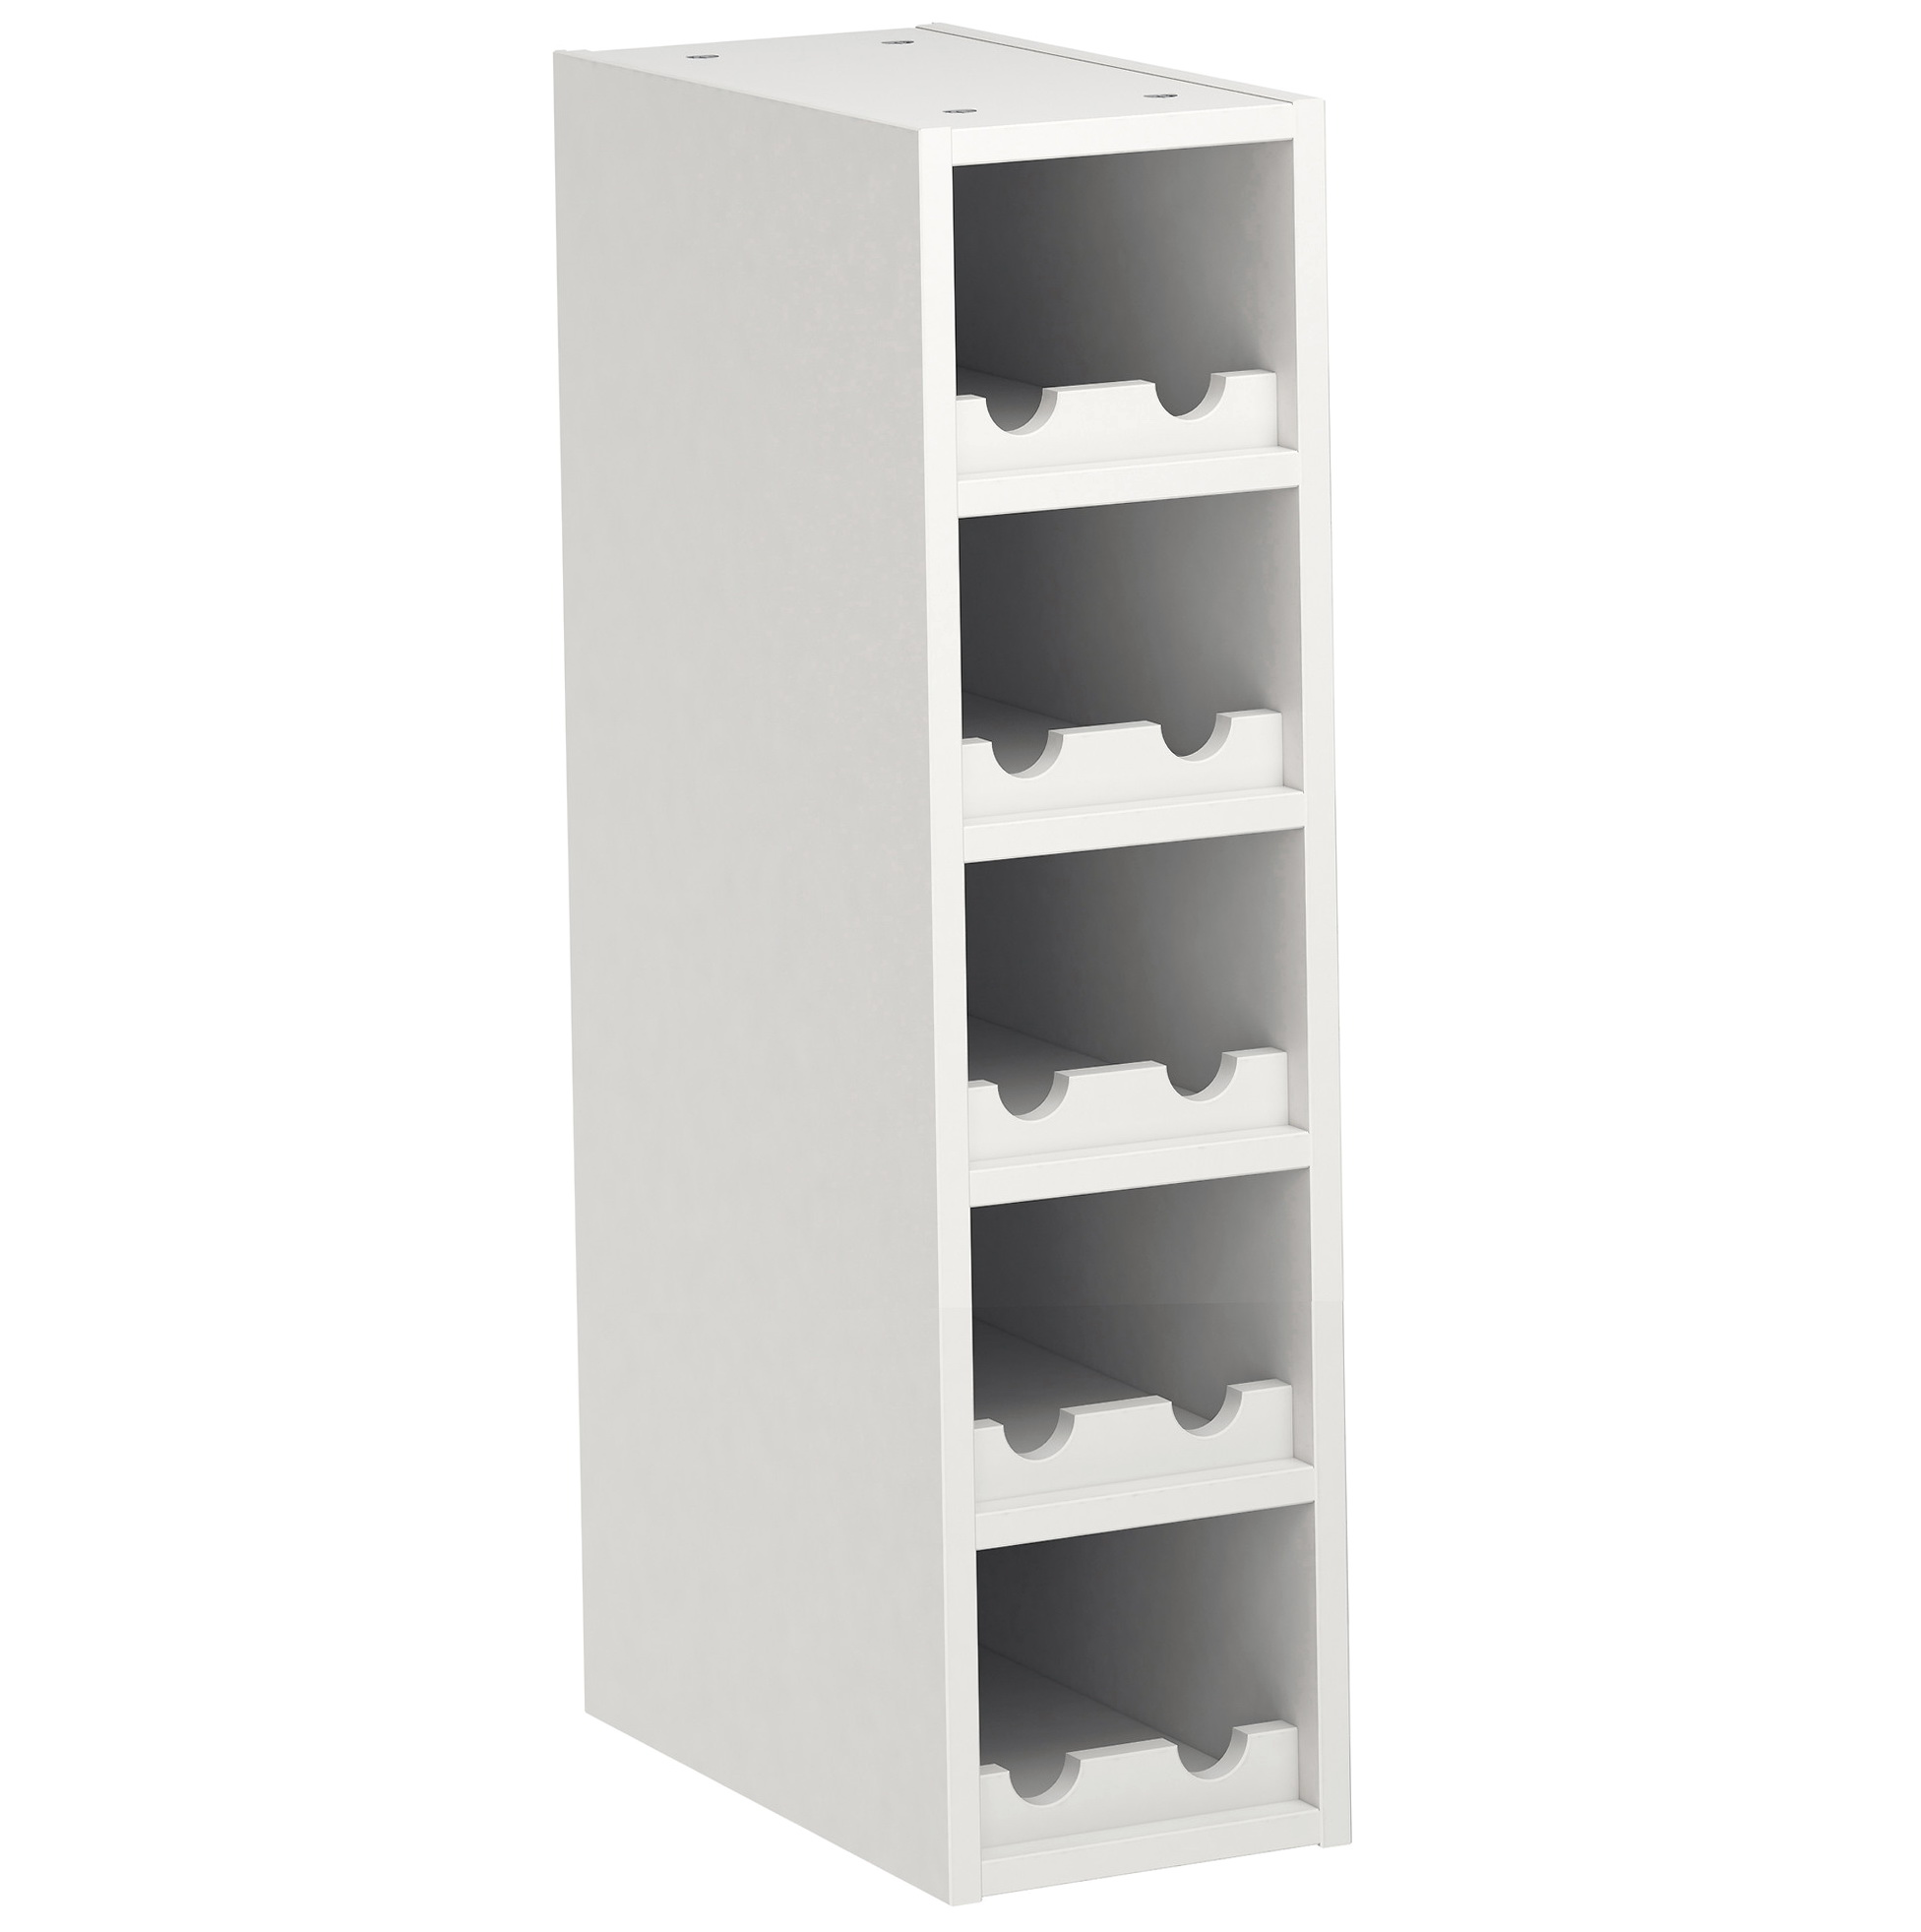 Permalink to White Wine Rack Cabinet Ikea